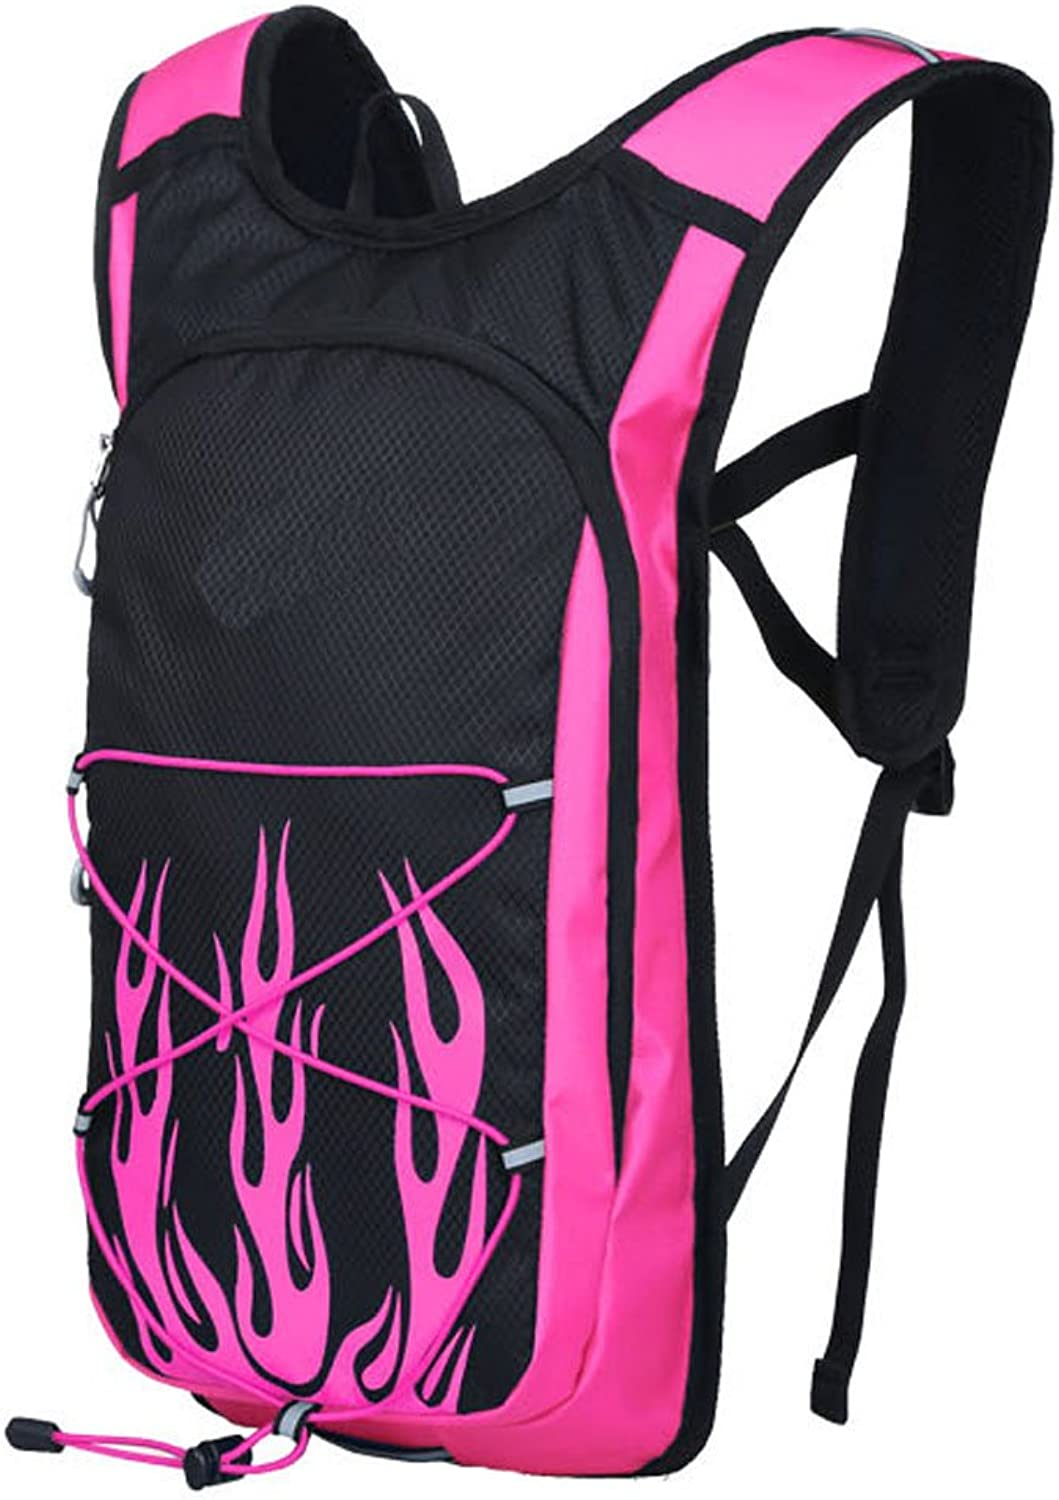 20L Large Capacity Outdoor Riding Backpack Waterproof Nylon Mountaineering Bag Leisure Travel Rucksack Men And Women Sports Daypack Removable Helmet Bag Air Diversion System Safety Reflective Strip,Pink